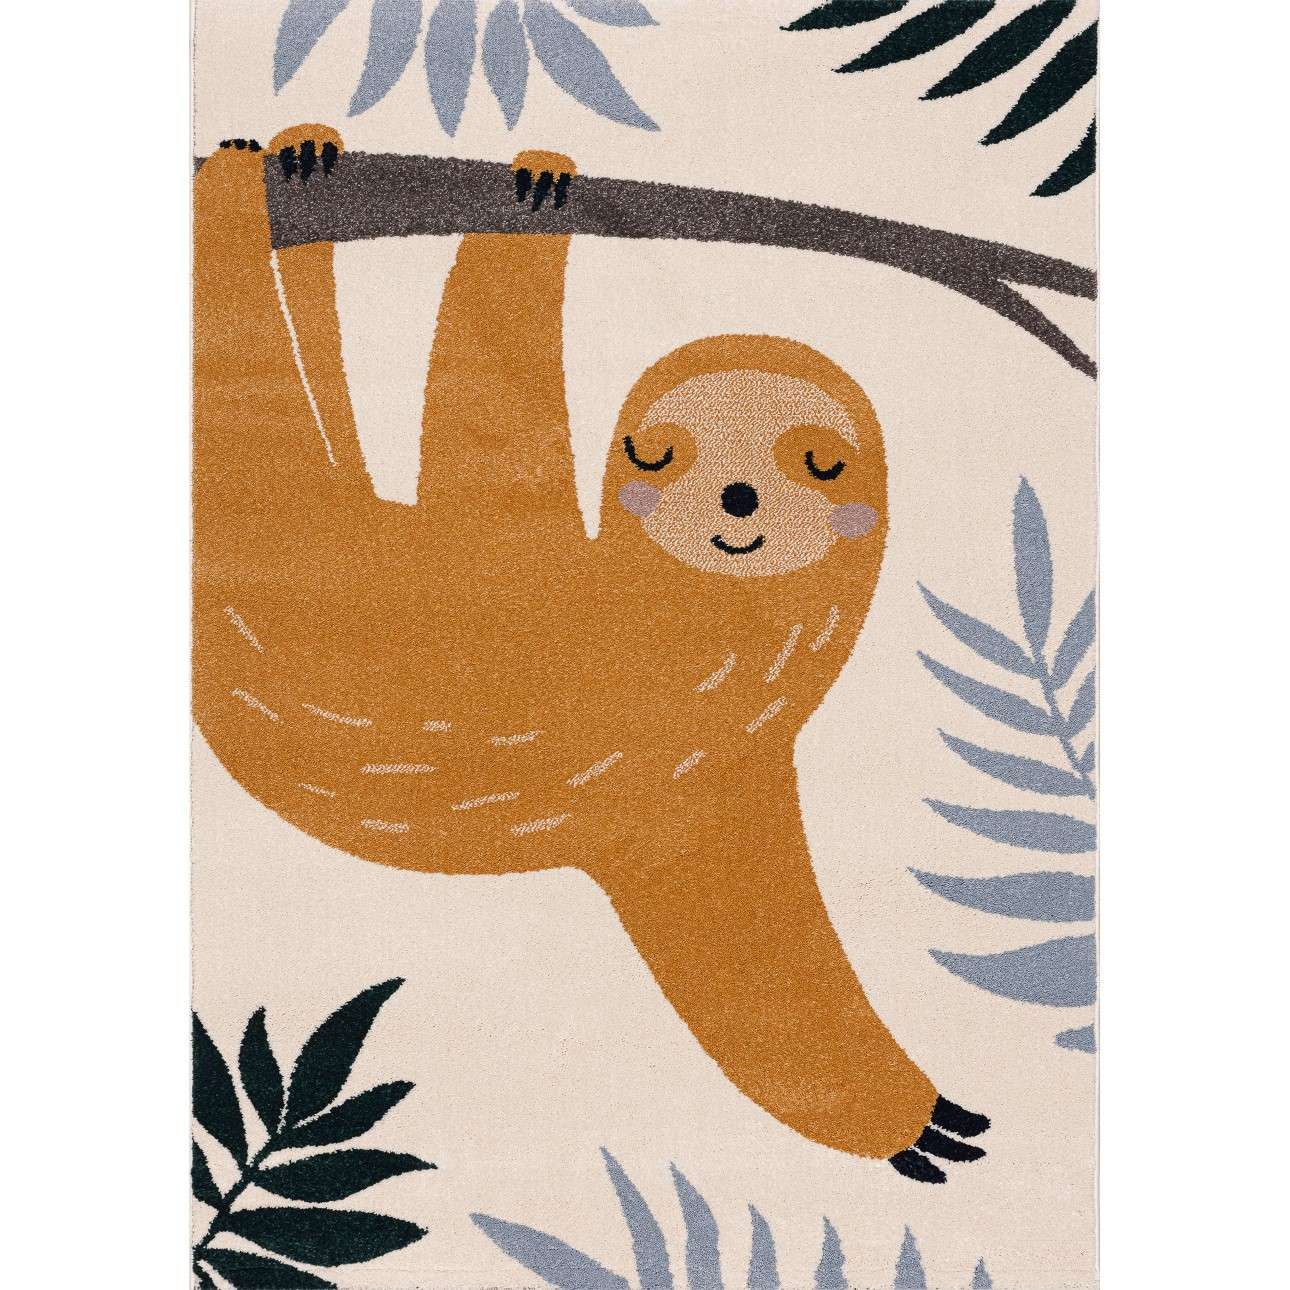 Teppich Happy Sloth 160x230cm